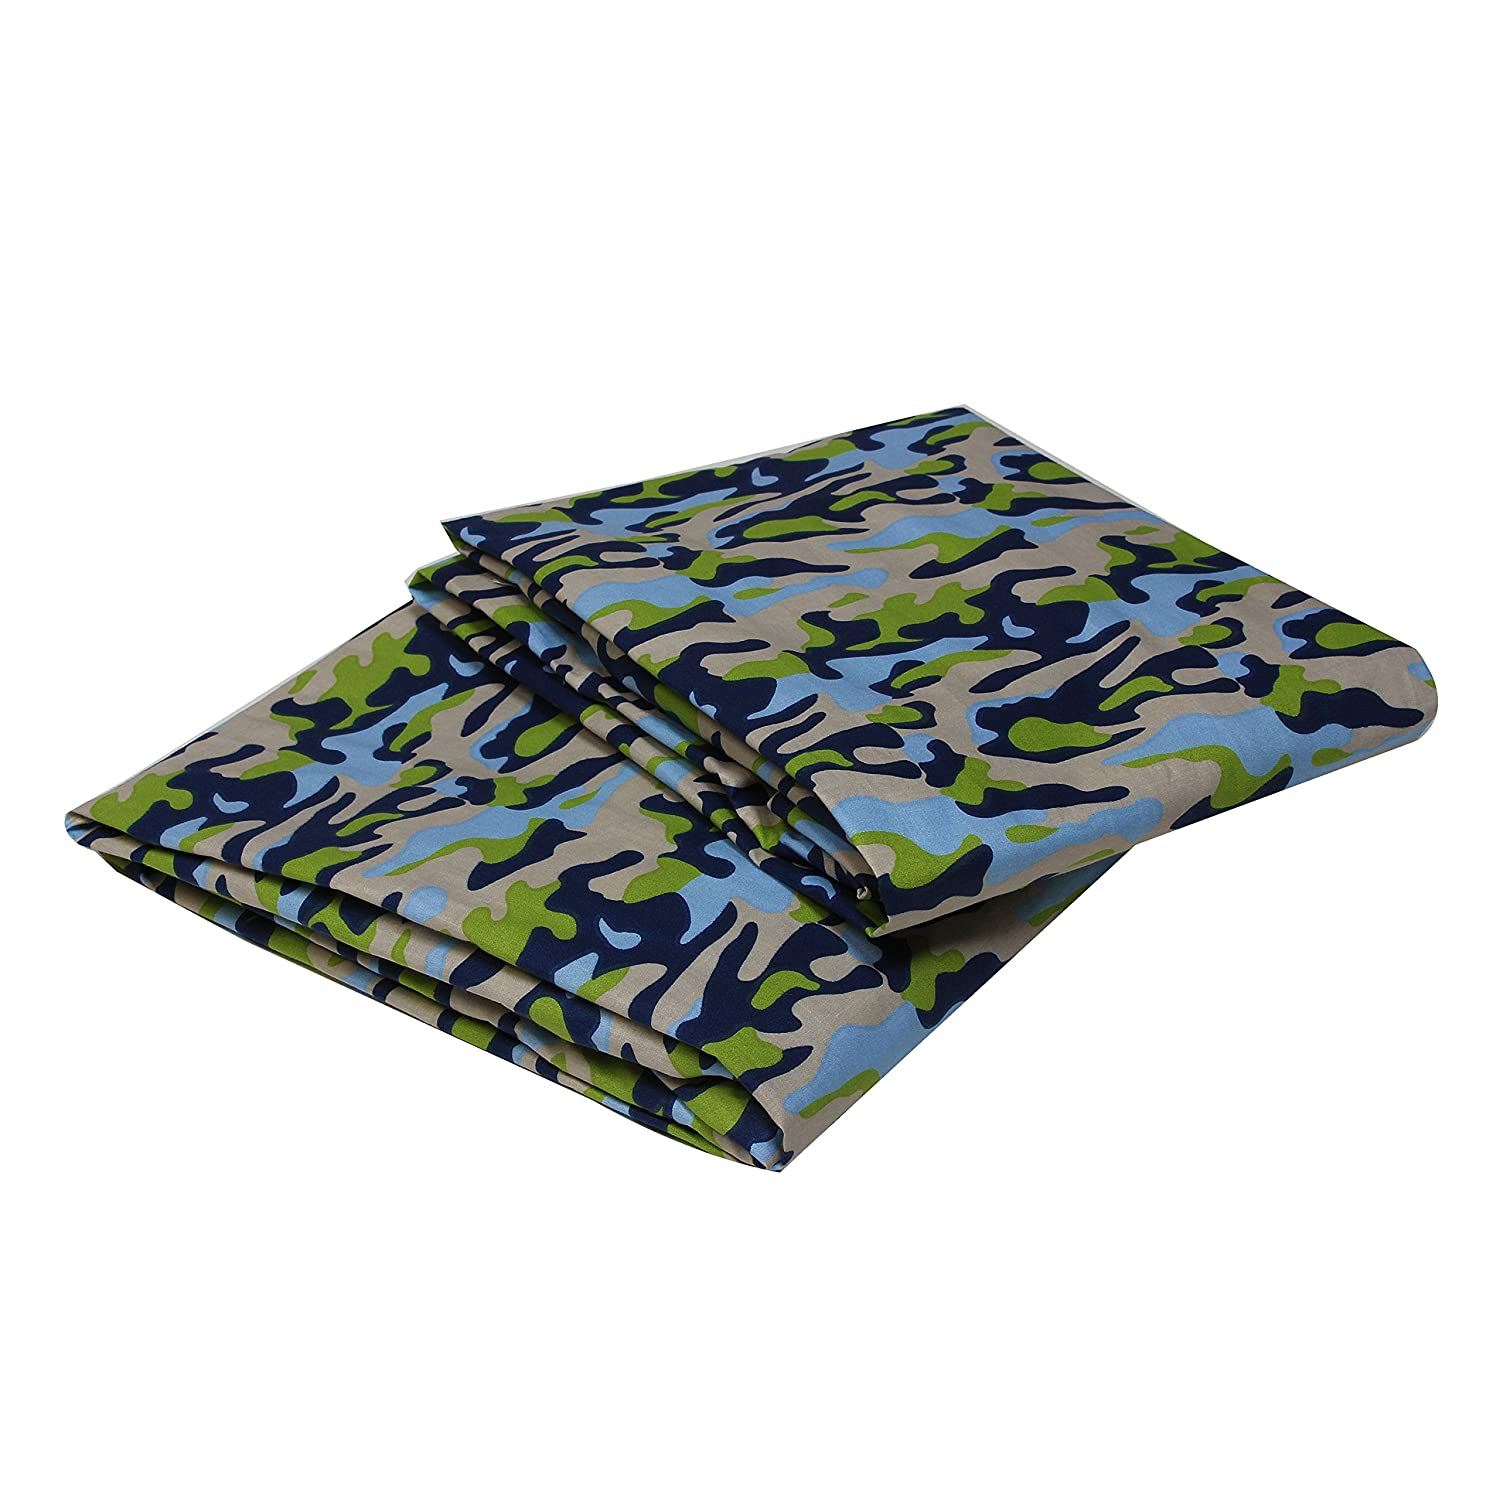 Bacati Crib Fitted Sheet Camo Printed Pack of 2